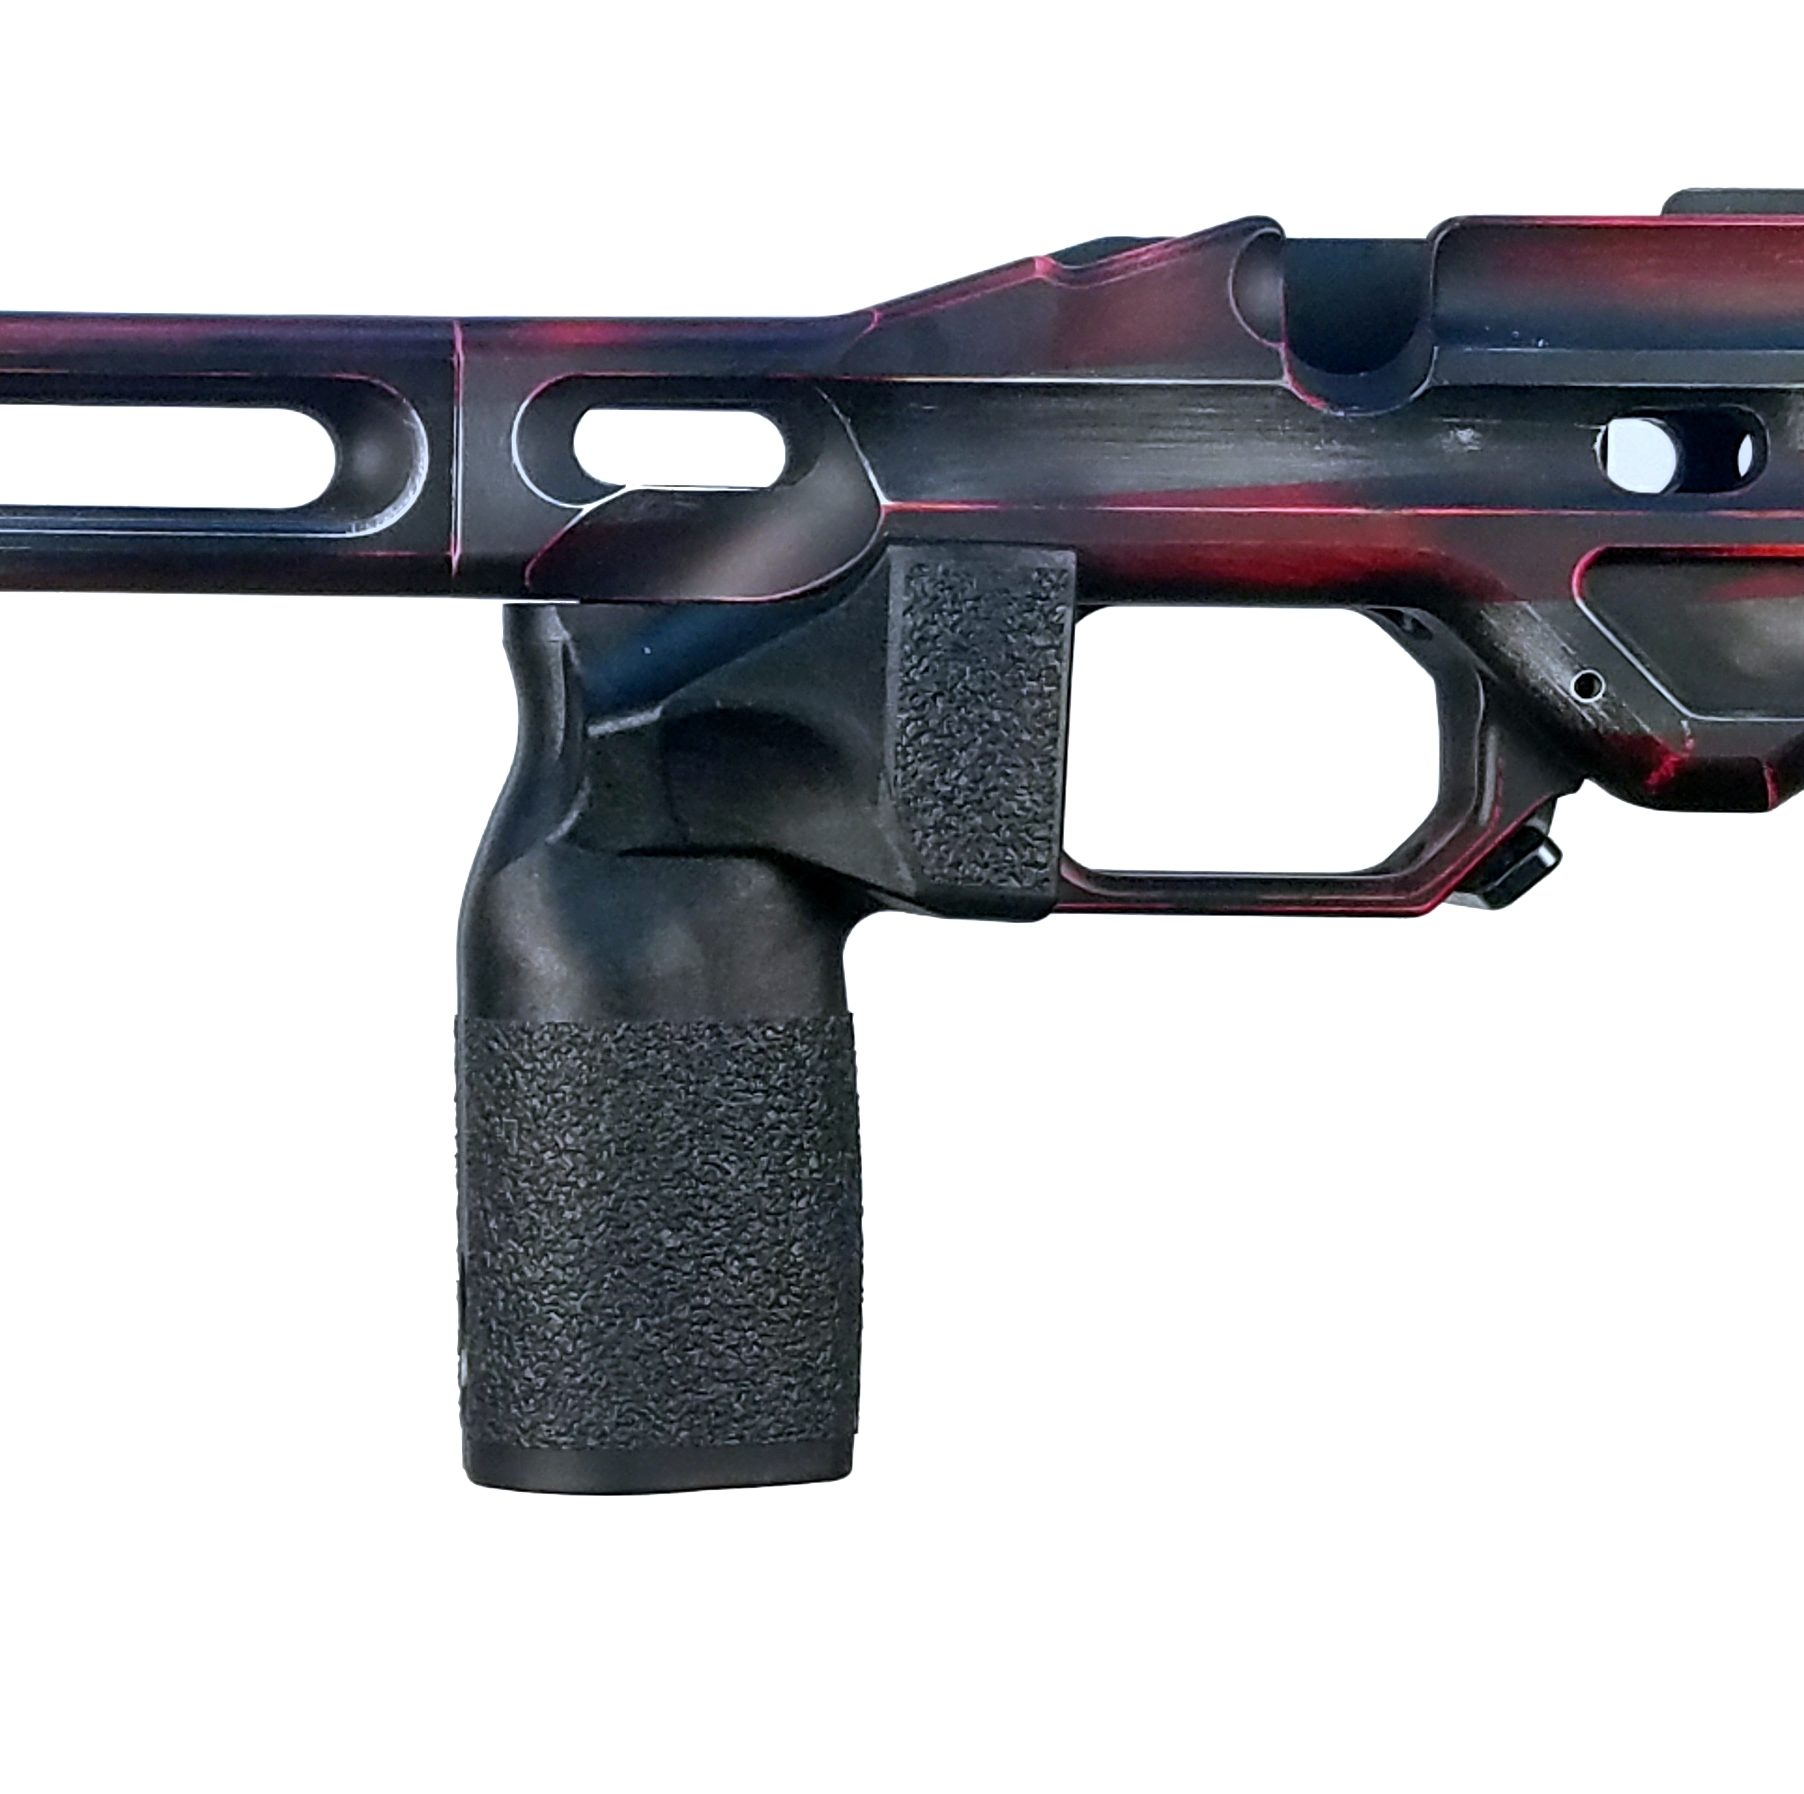 MPA EVG Grip (Enhanced Vertical Grip) - MasterPiece Arms, Inc